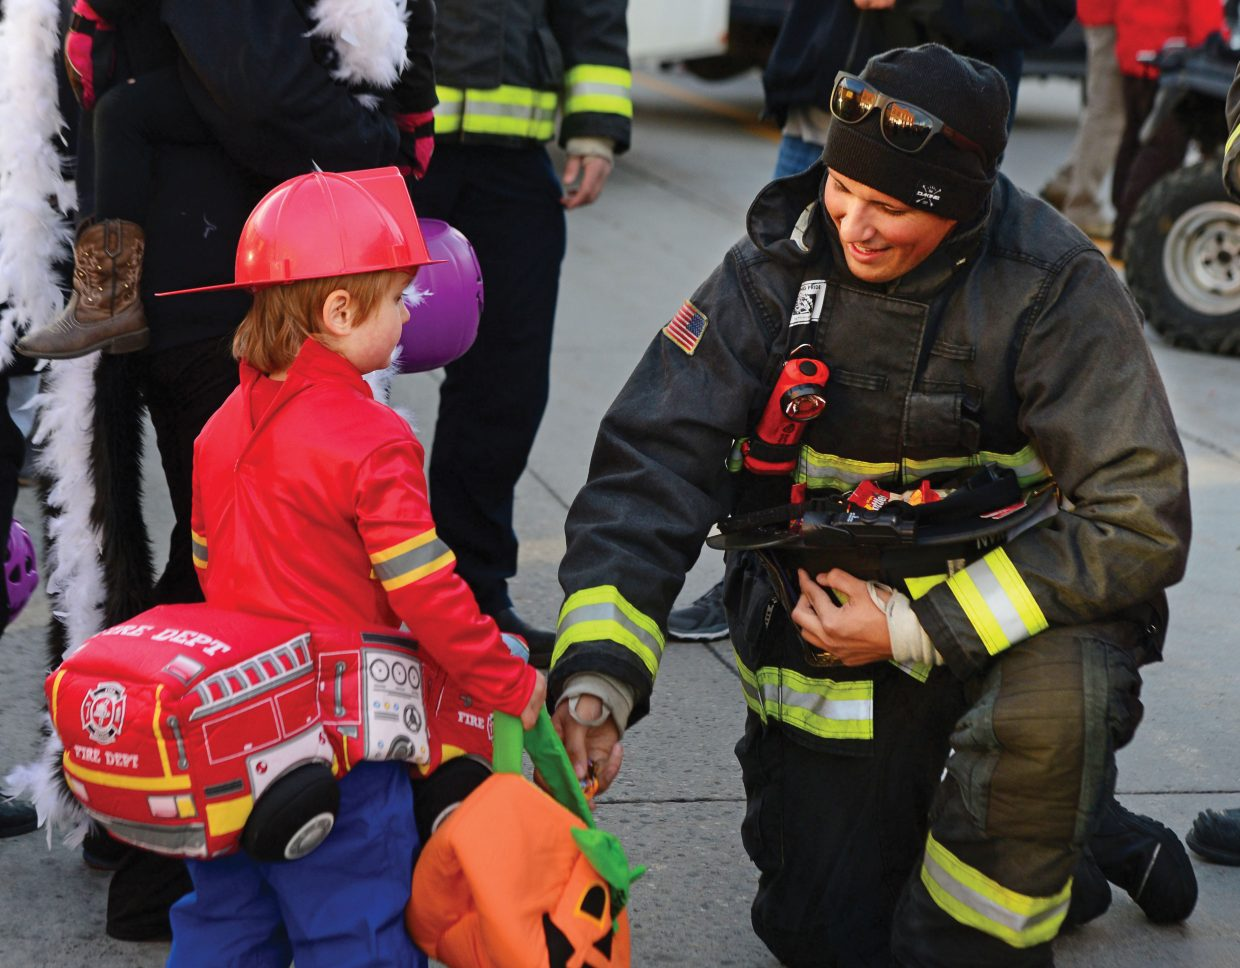 Steamboat Springs firefighter Isaiah Hartman hands out candy to Frankie Conley during Tuesday night's Halloween Stroll in downtown Steamboat Springs.